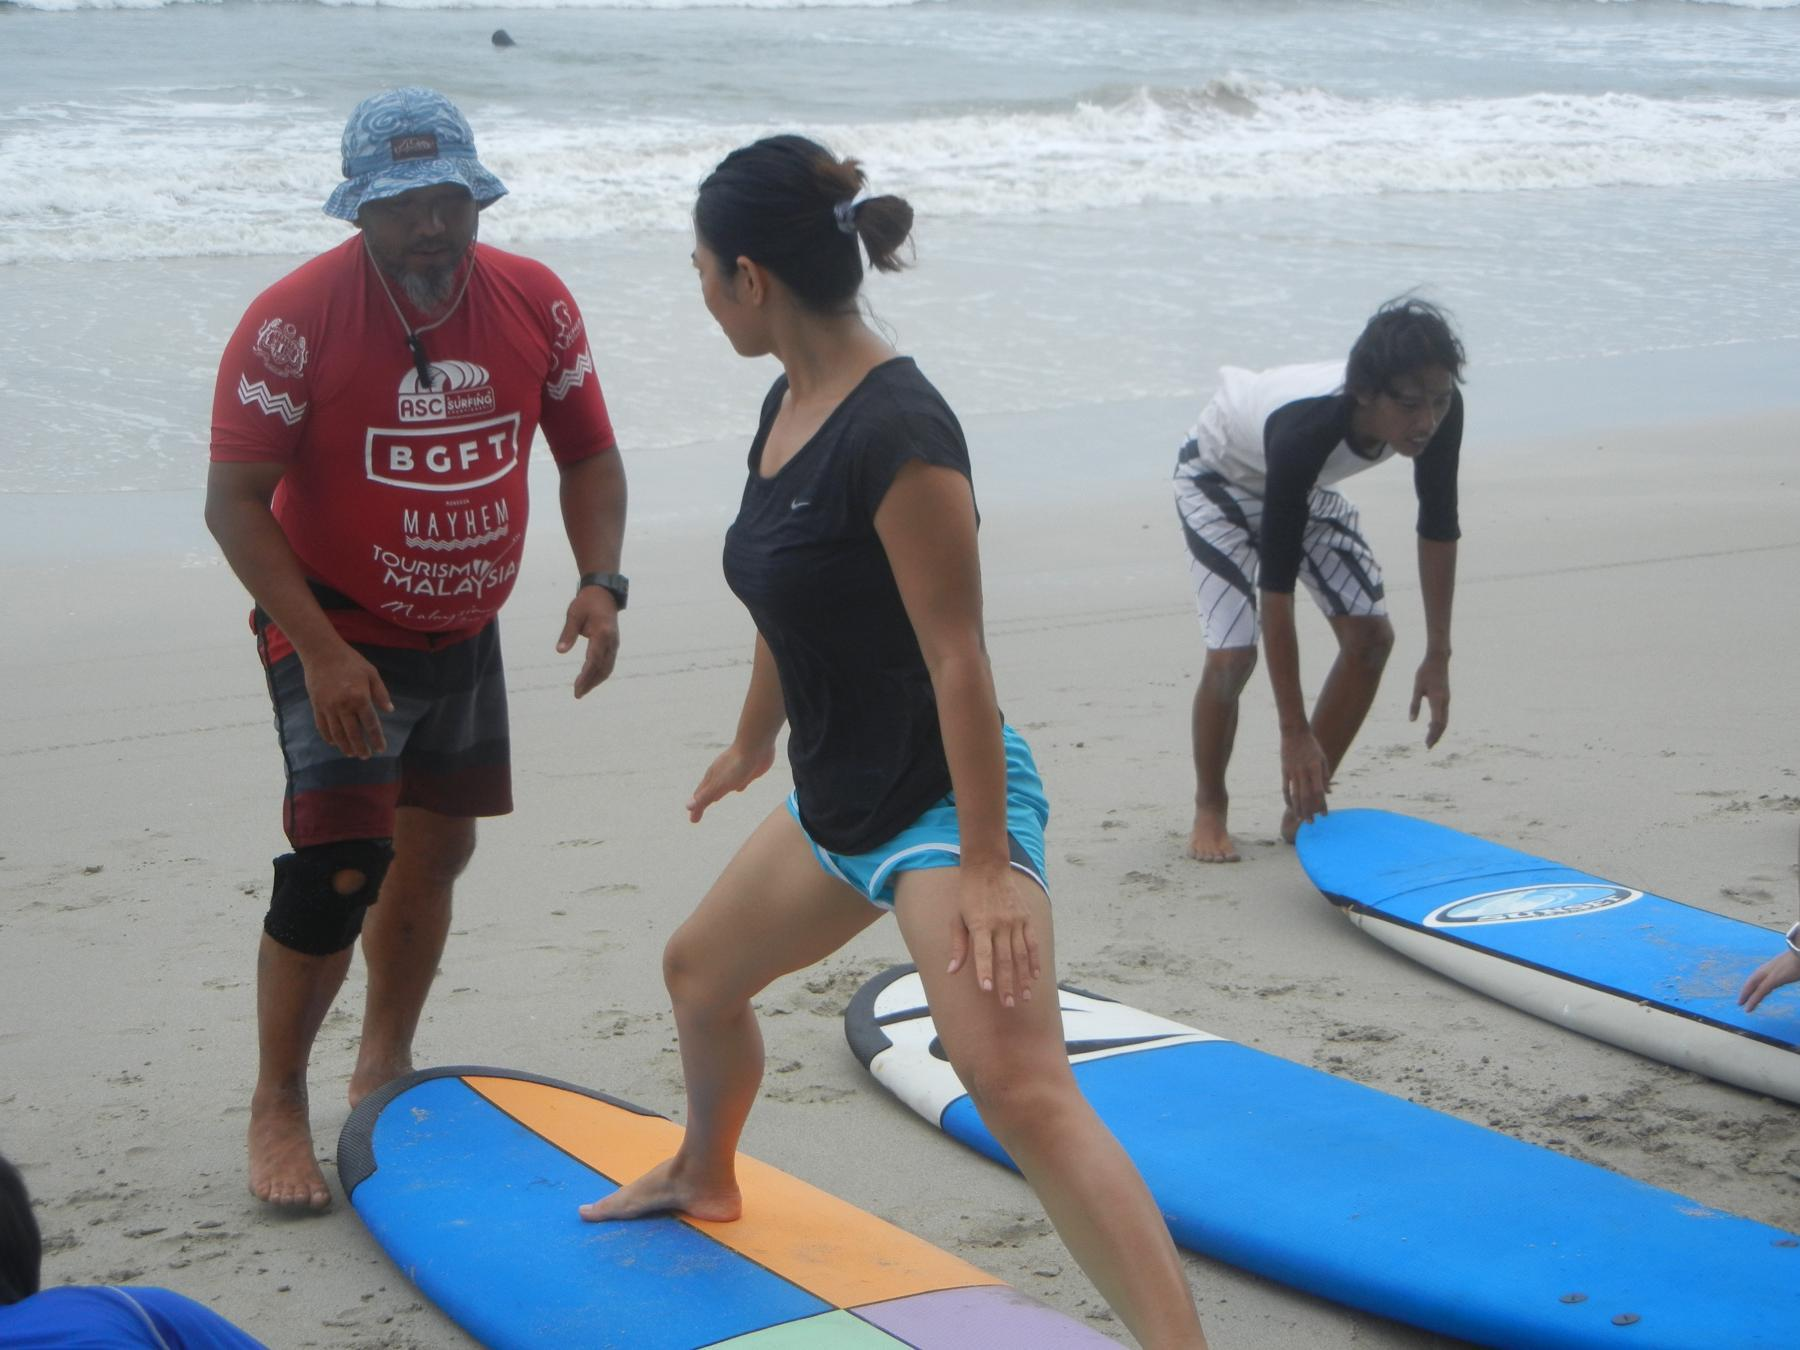 Let's learn surfing for a day (beginners welcome) starting at Tanjung Sedeli Johor Malaysia